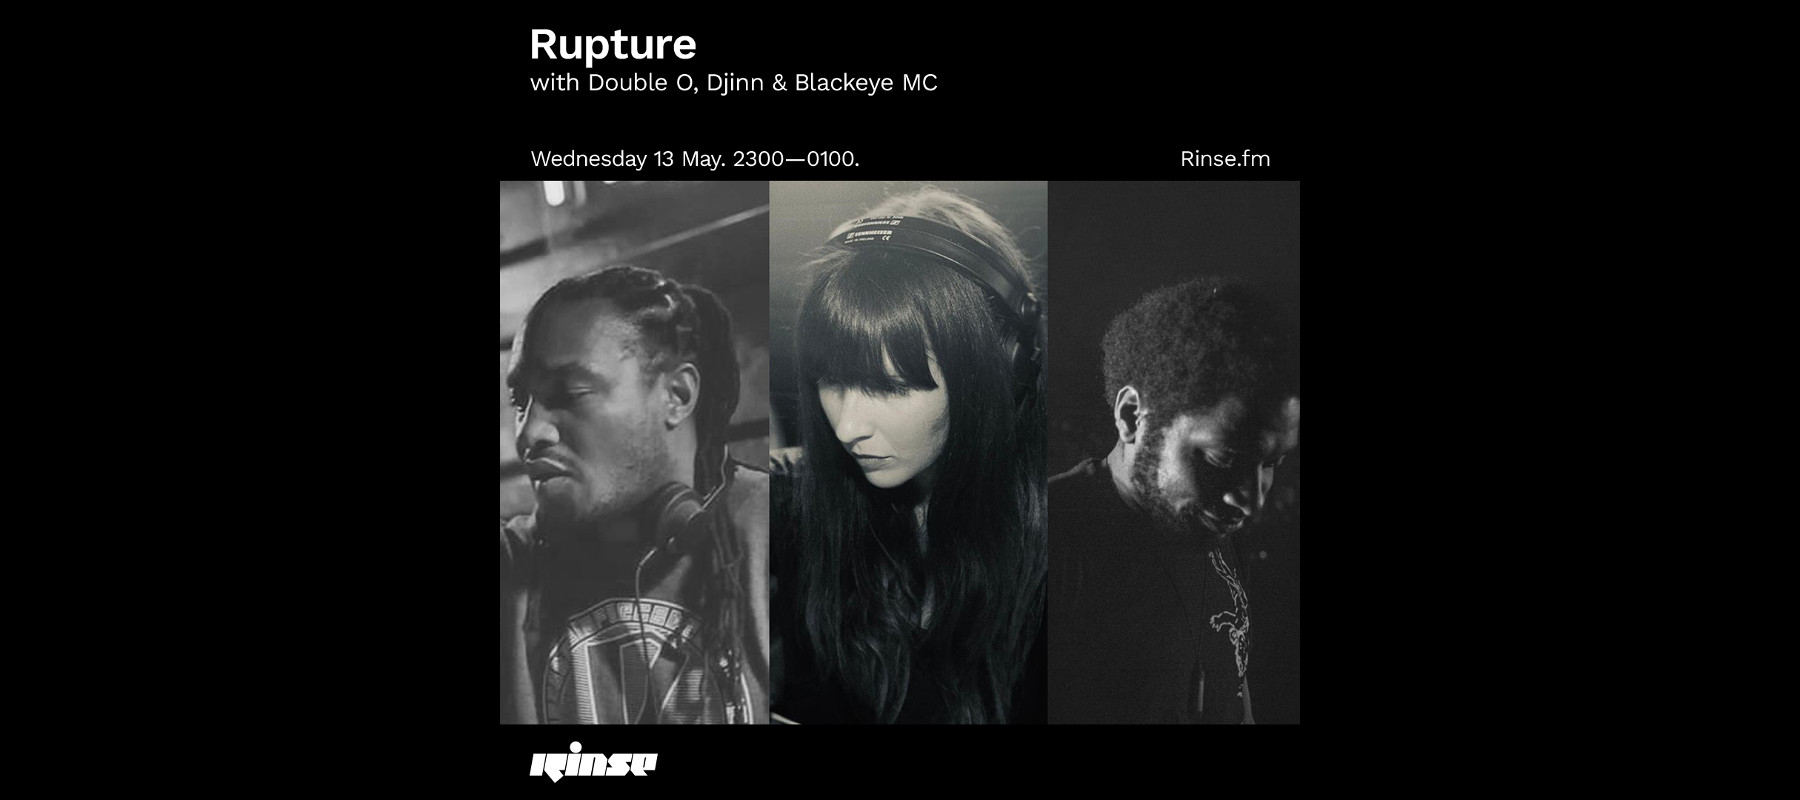 website rinse may 2020